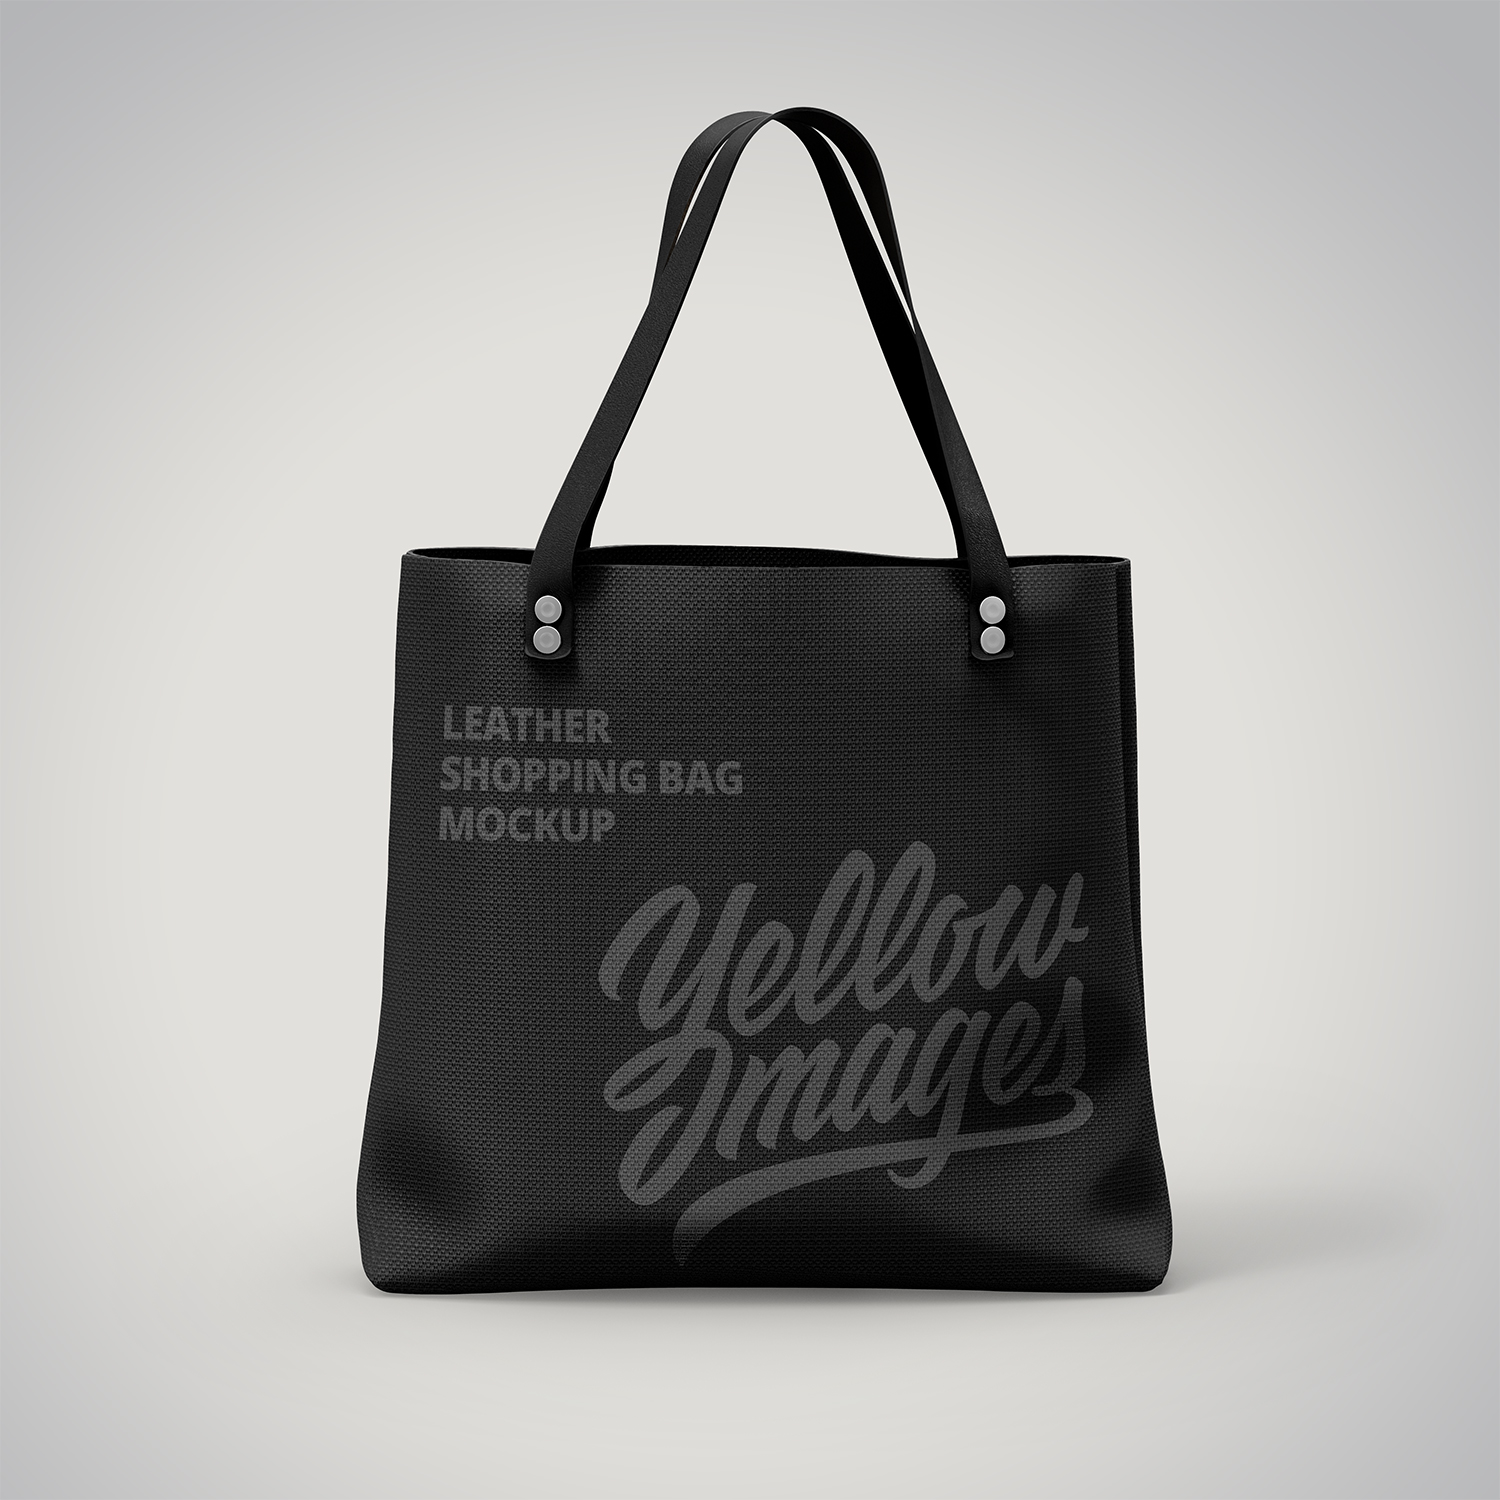 Download Leather Shopping Bag Mockup Best Free Mockups PSD Mockup Templates